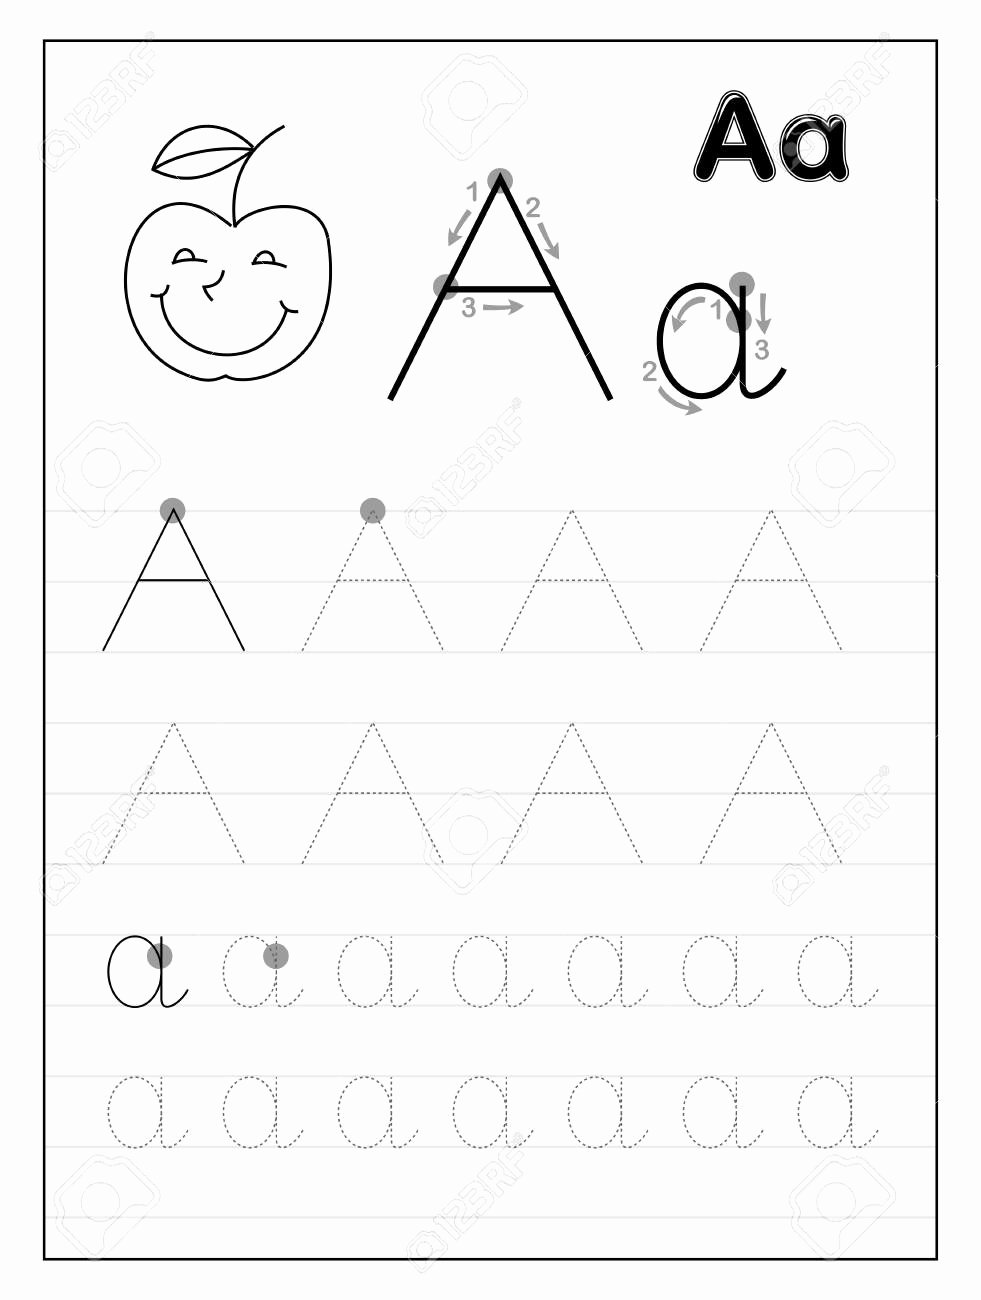 Alphabet Worksheets for Preschoolers Printable Inspirational Math Worksheet Math Worksheet Preschool Letter Worksheets